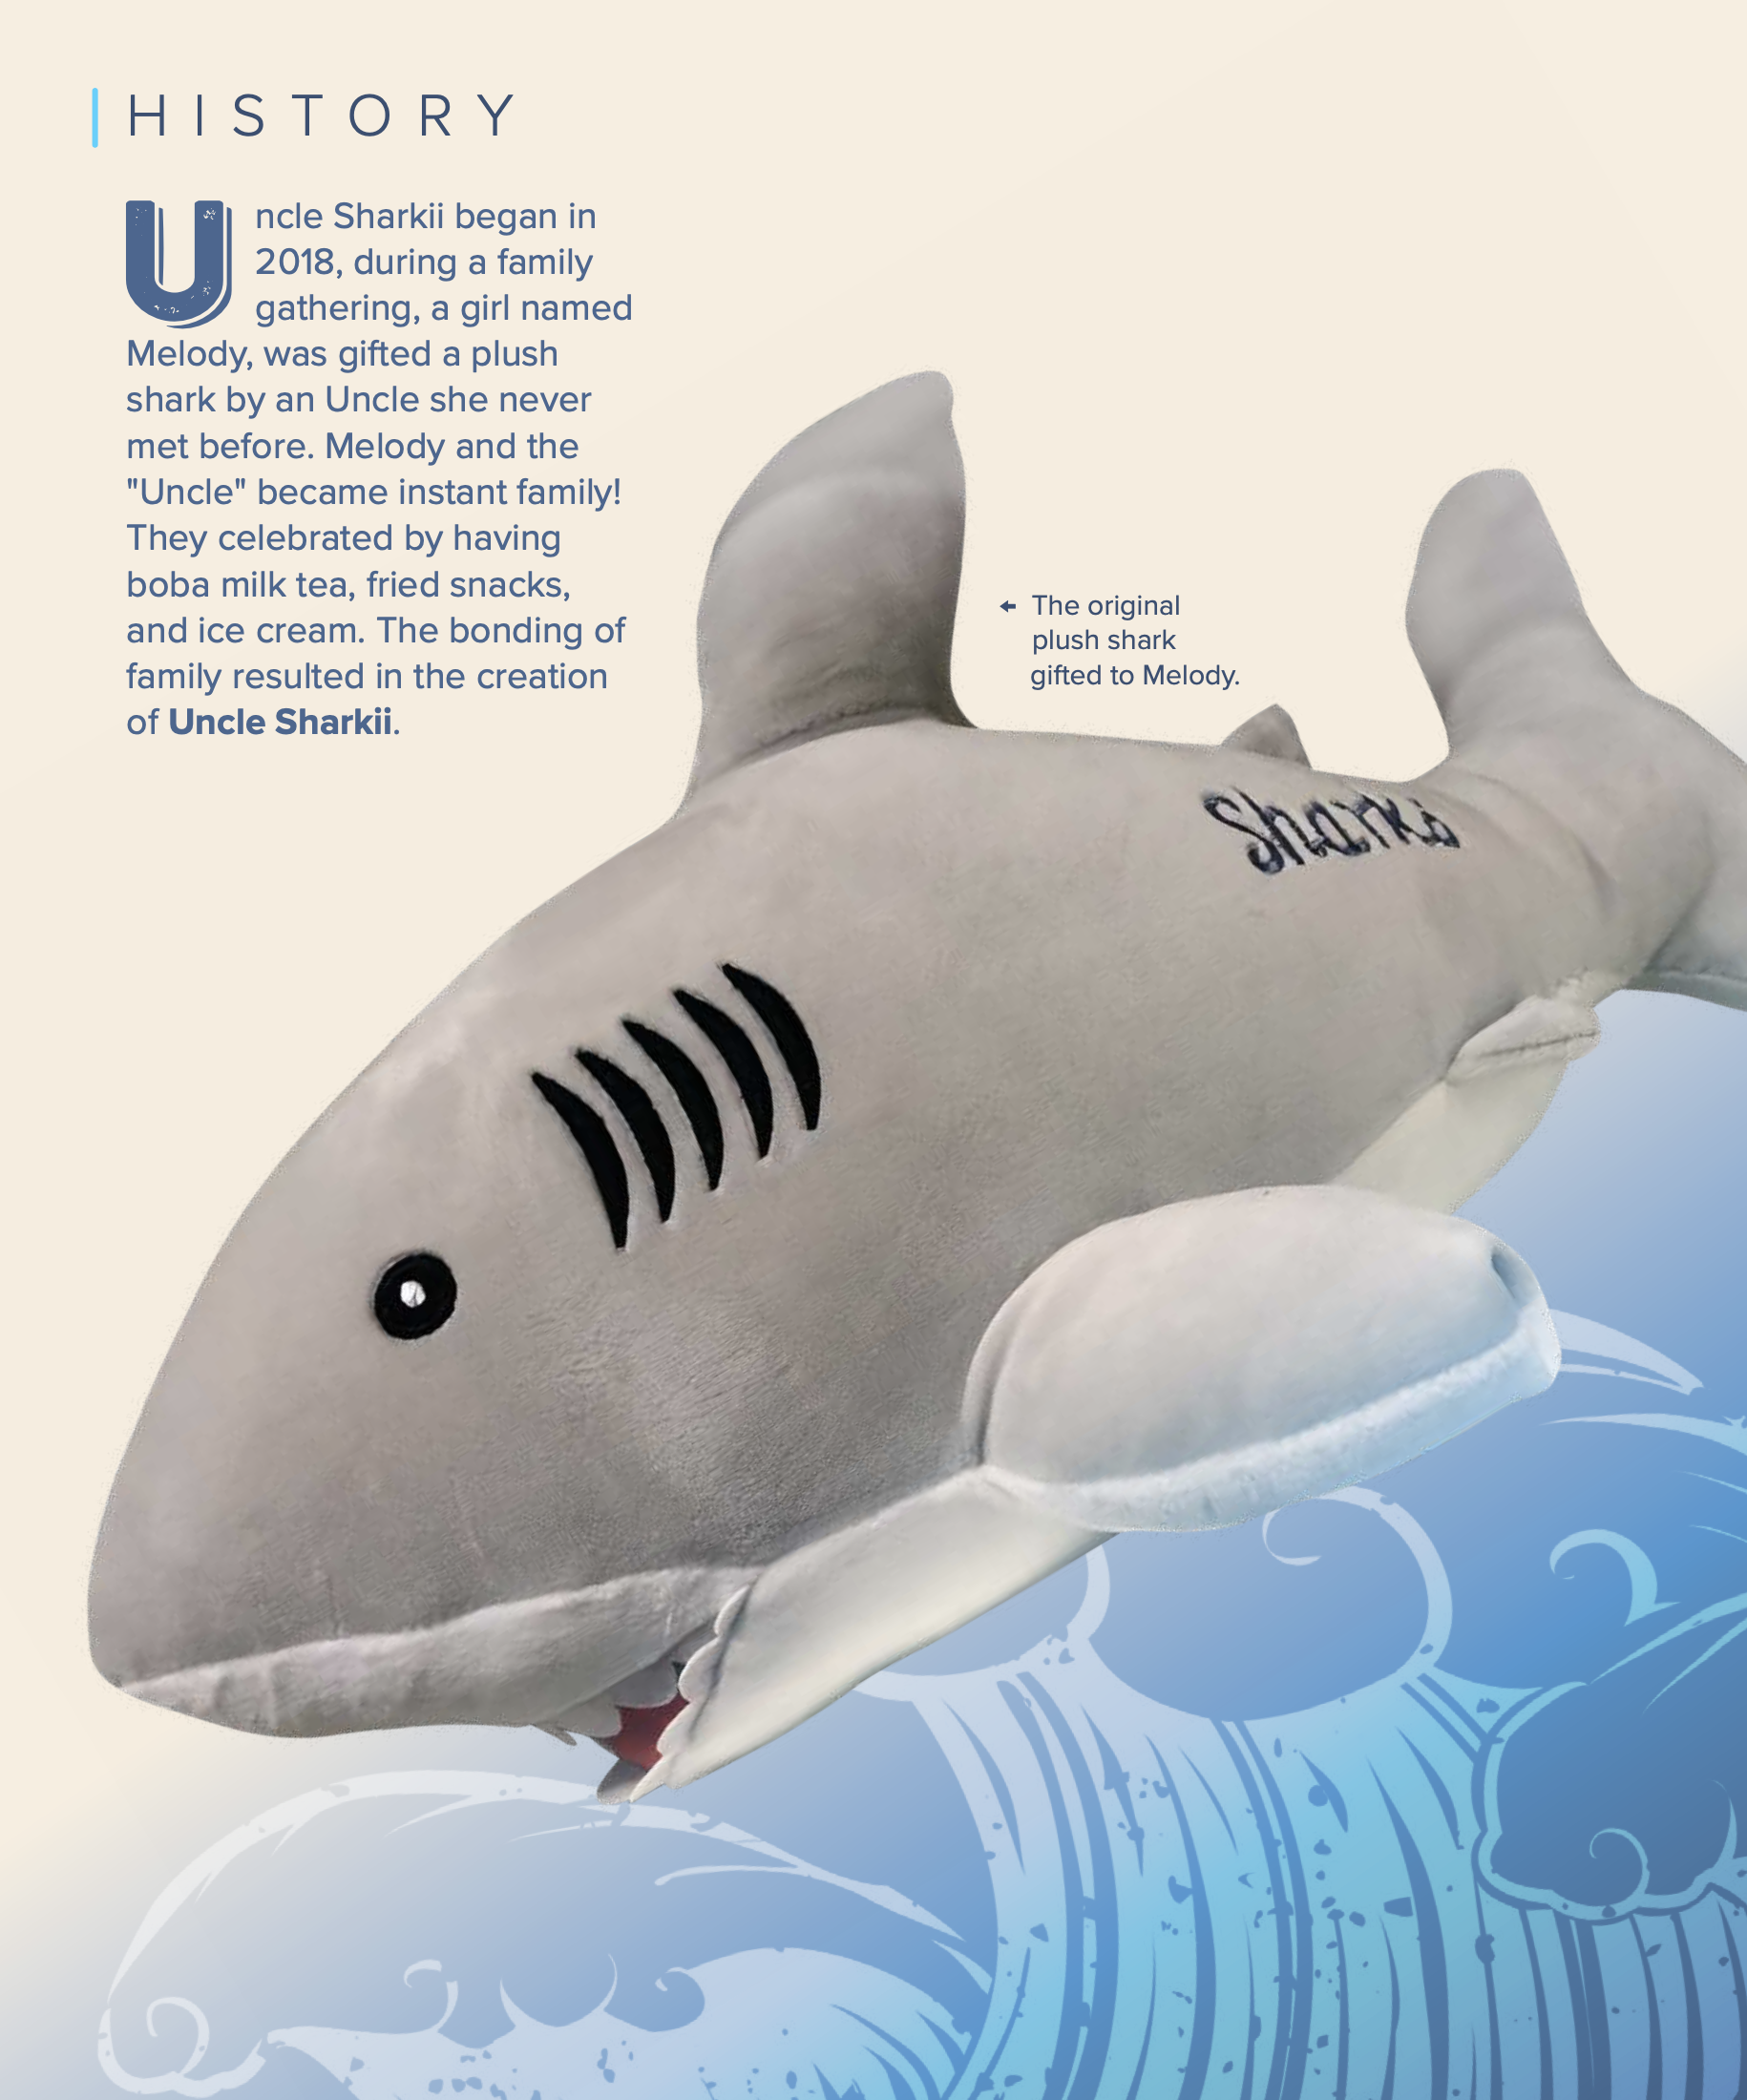 """HISTORY  Uncle Sharkii began in 2018, during a family gathering, a girl named Melody, was gifted a plush shark by an Uncle she never met before. Melody and the """"Uncle"""" became instant family! They celebrated by having boba milk tea, fried snacks, and ice cream. The bonding of family resulted in the creation of Uncle Sharkii.  The original plush shark gifted to Melody."""